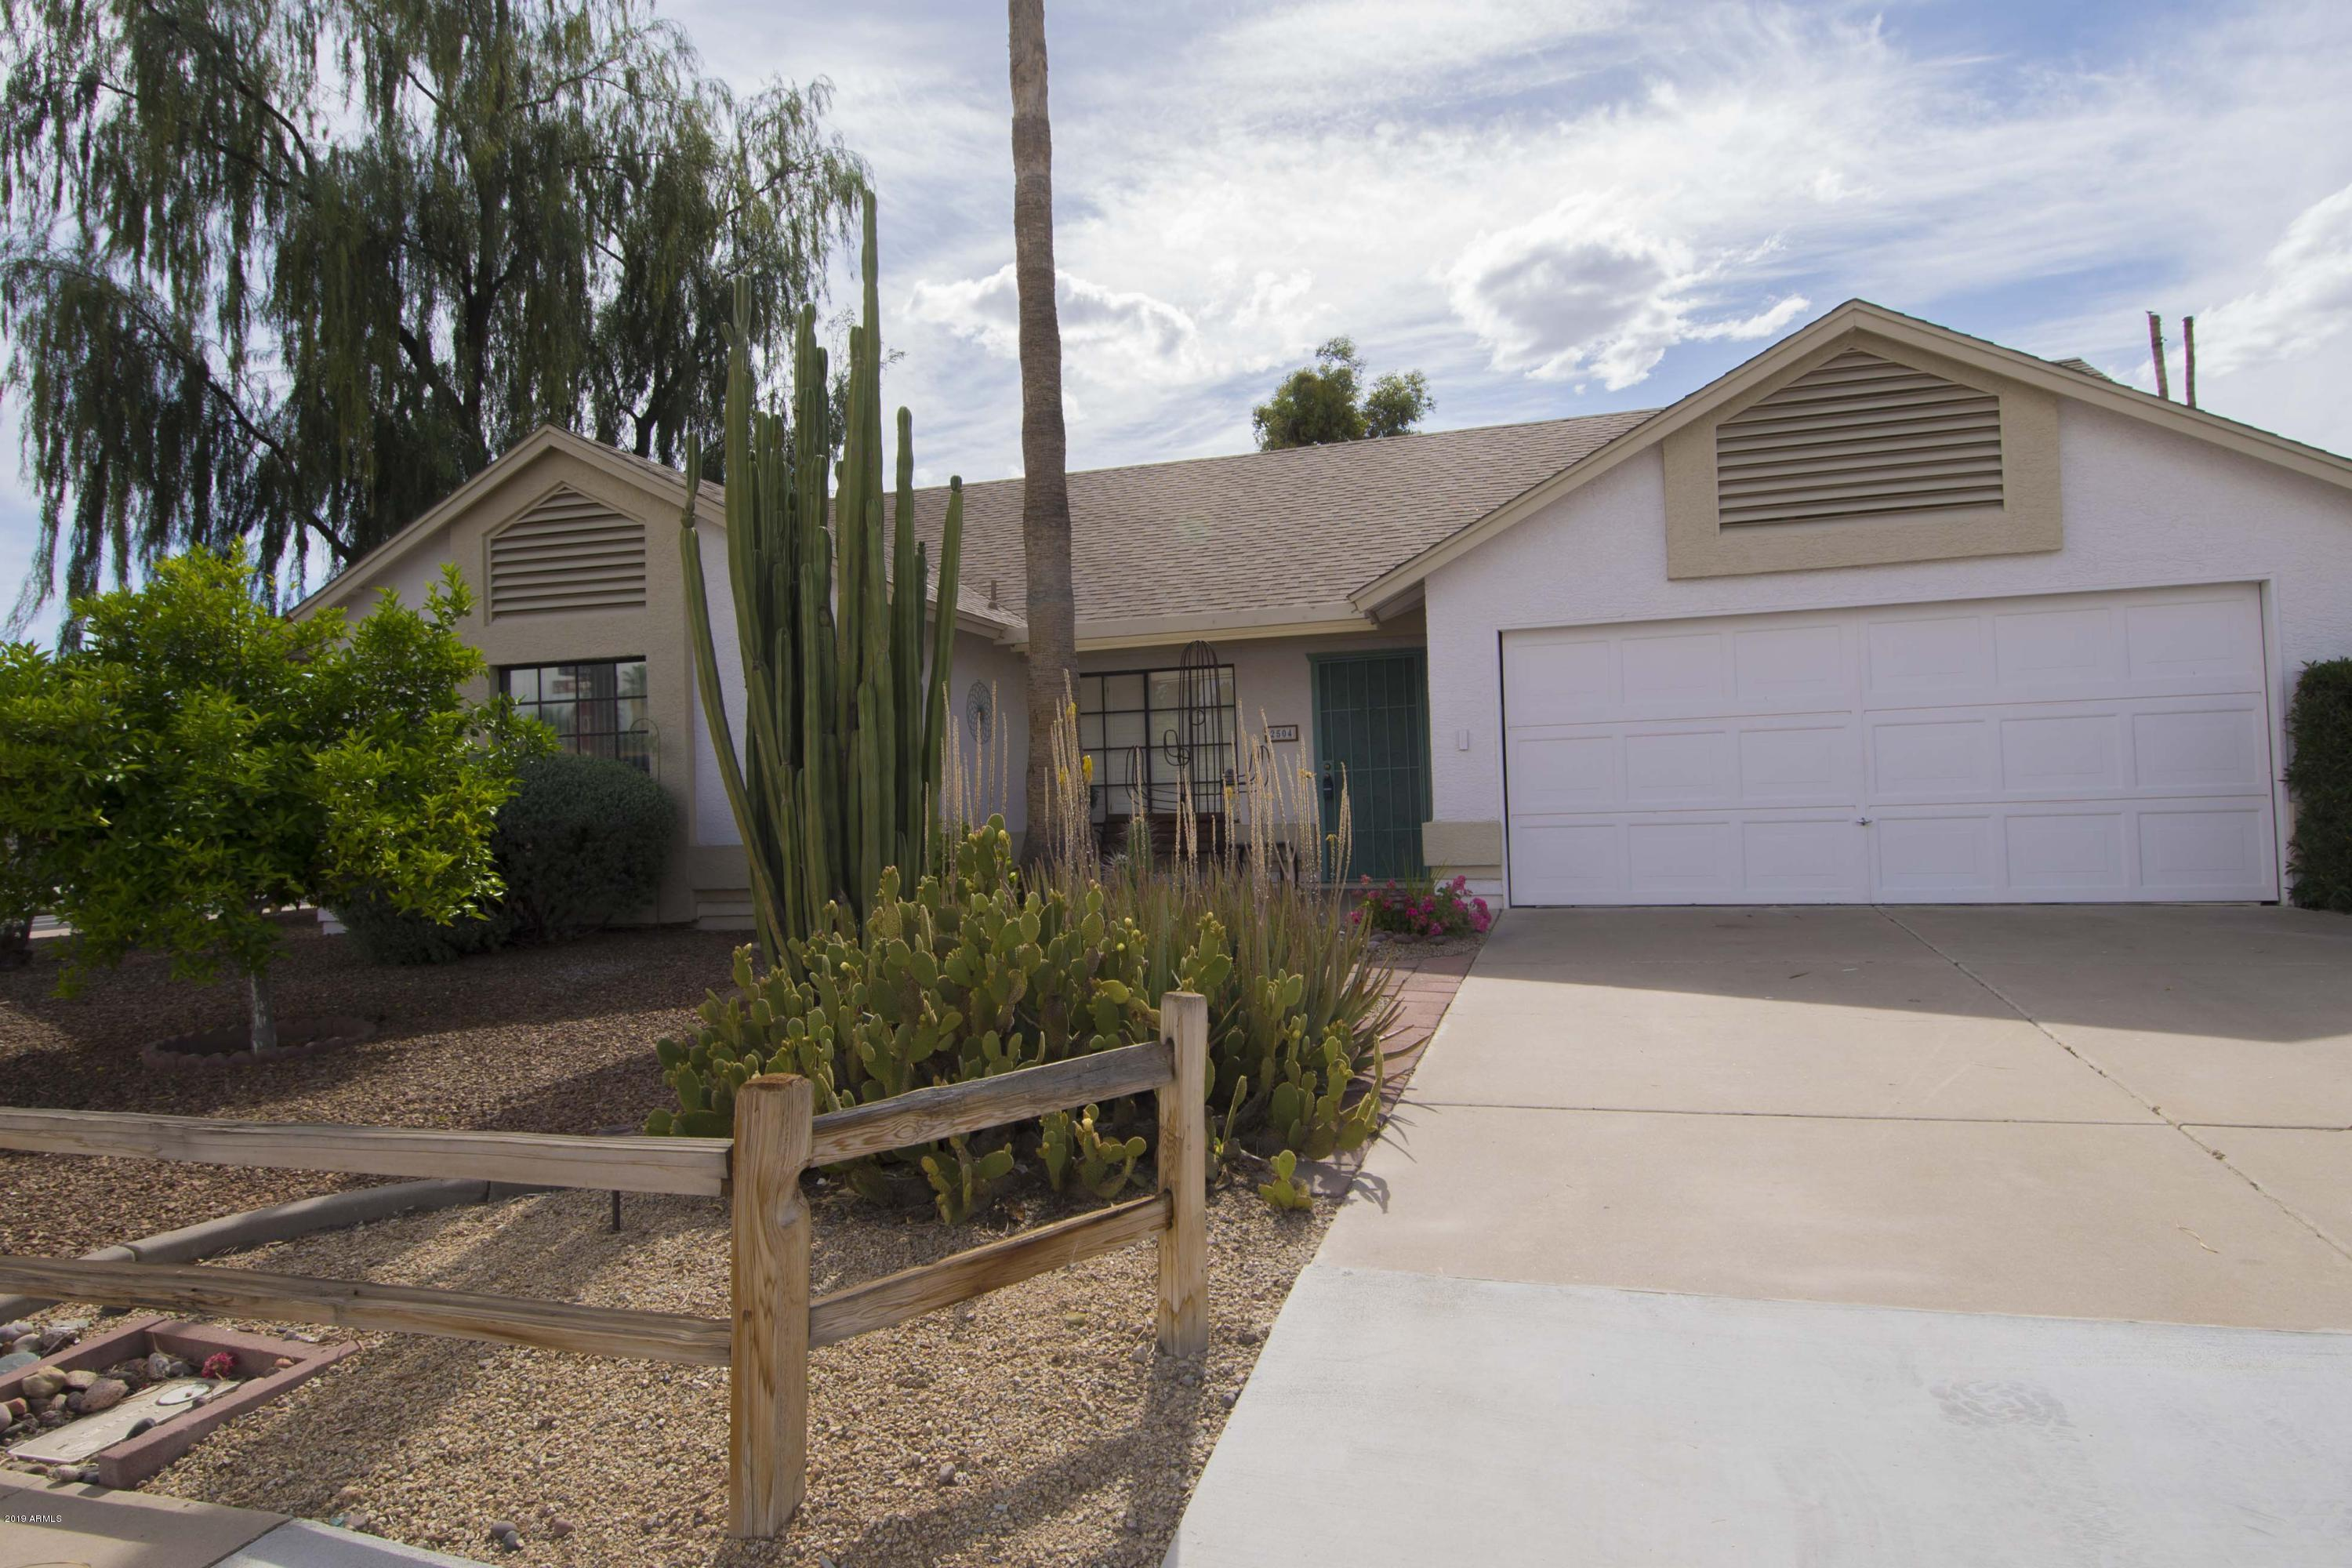 Photo of 2504 N EVERGREEN Street, Chandler, AZ 85225